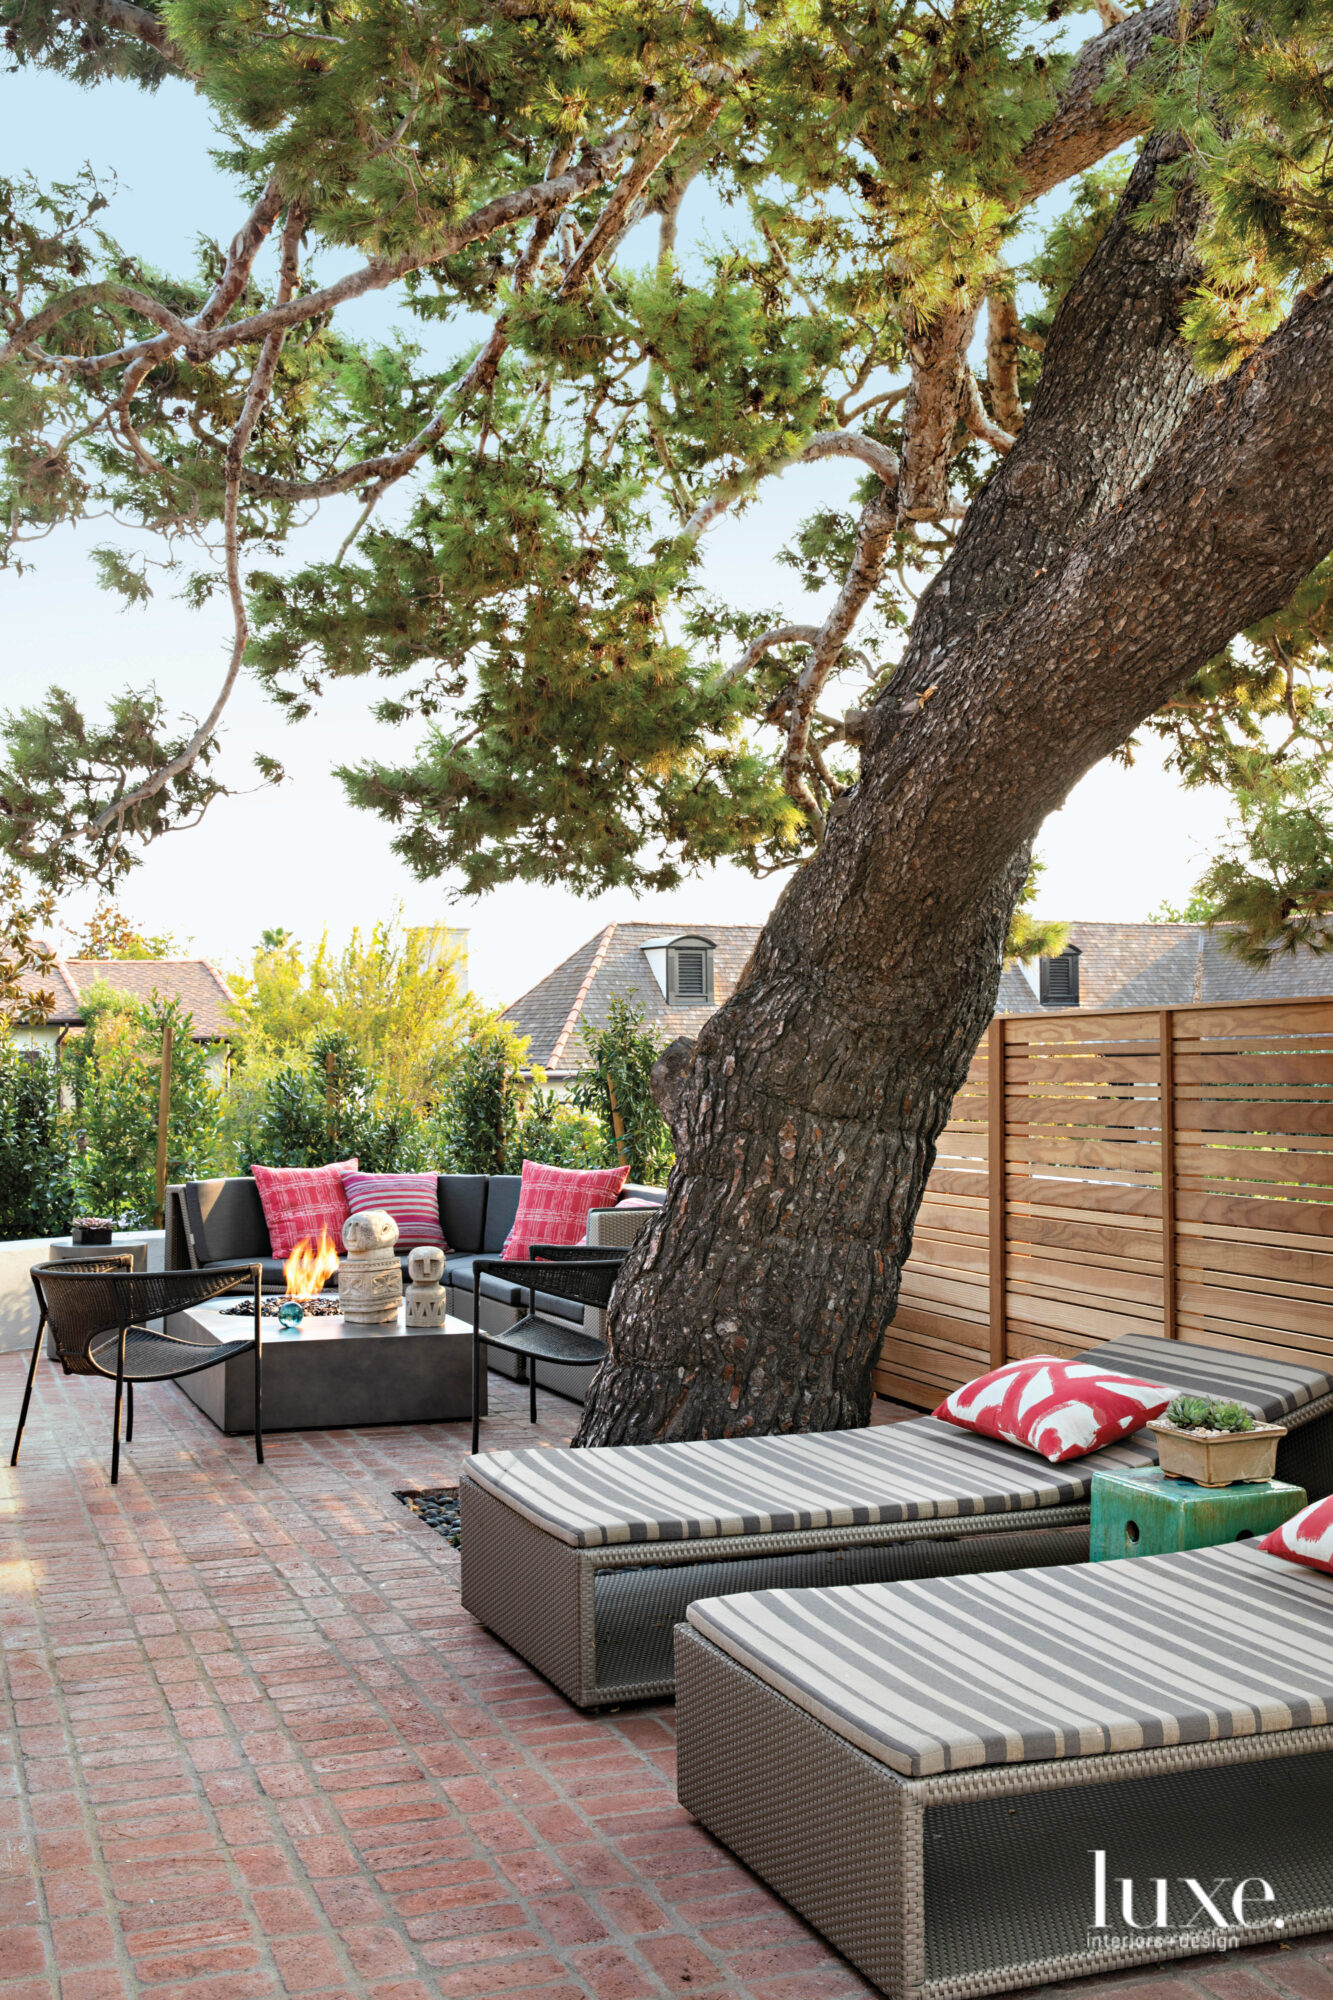 Garden view with tree, loungers...